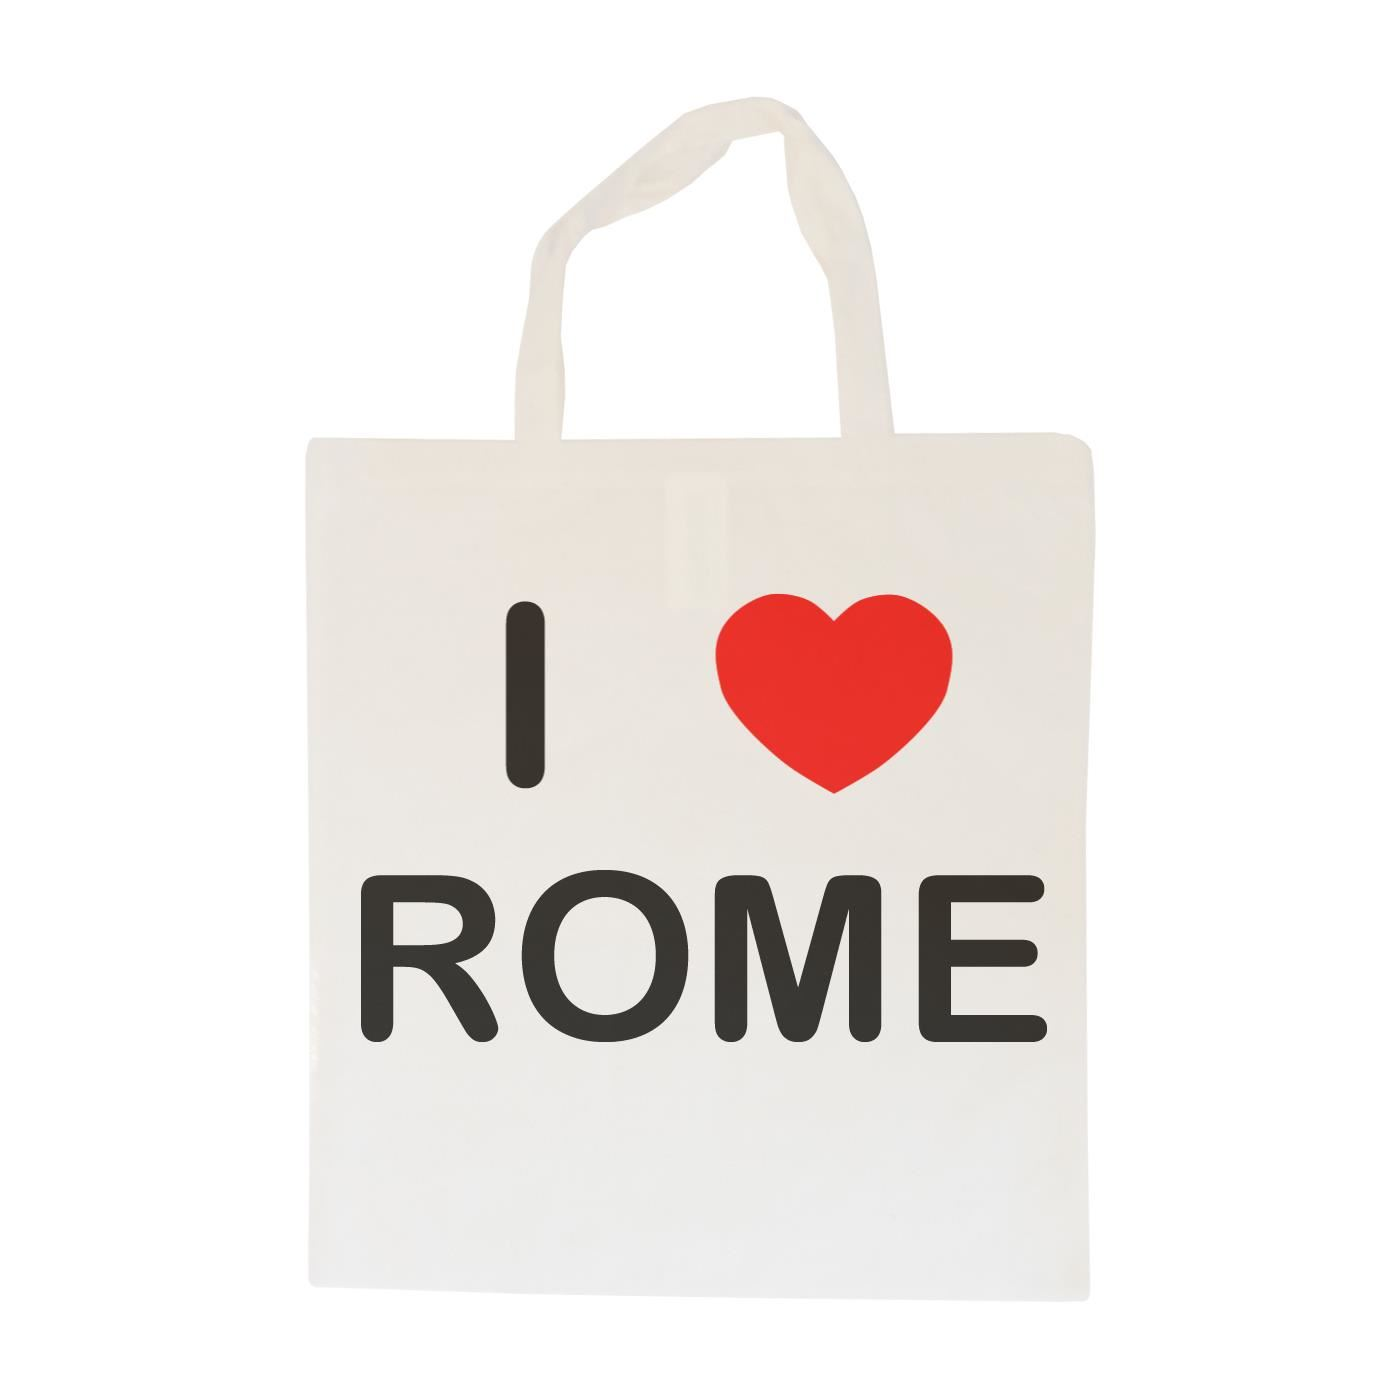 I Love Rome - Cotton Bag | Size choice Tote, Shopper or Sling